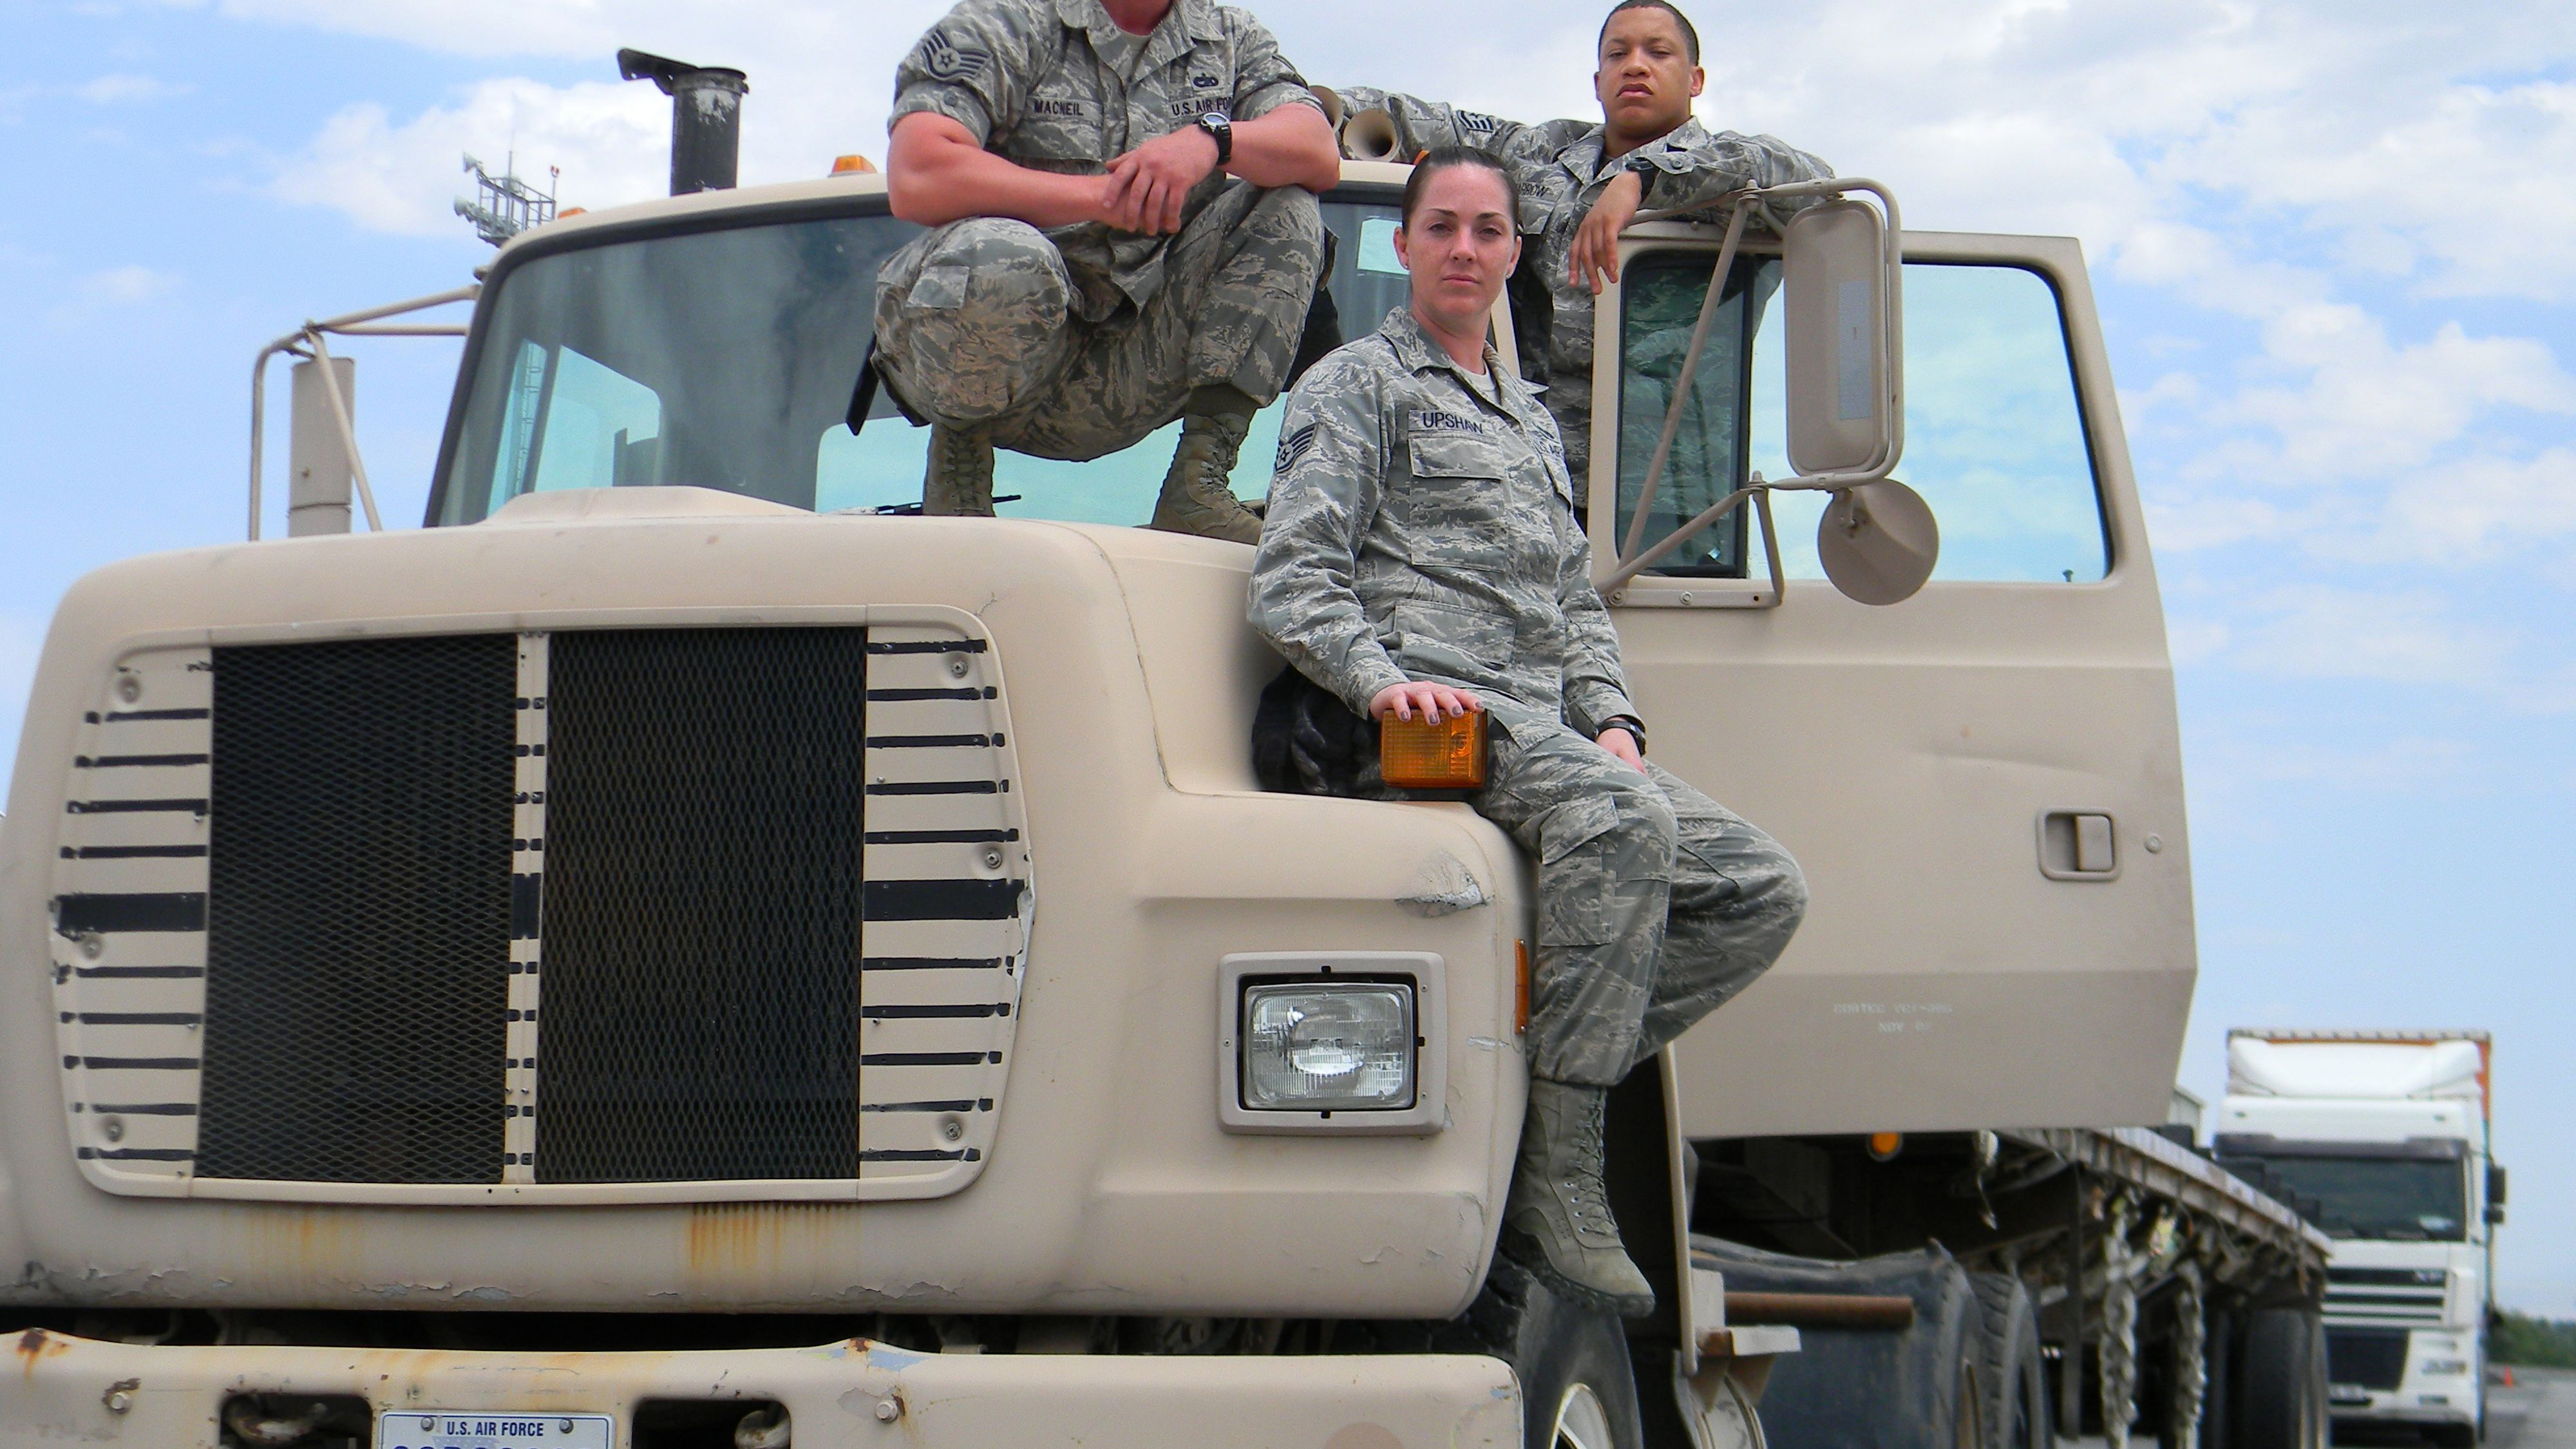 Air Force Enlisted Job: 2T1X1 Vehicle Operations